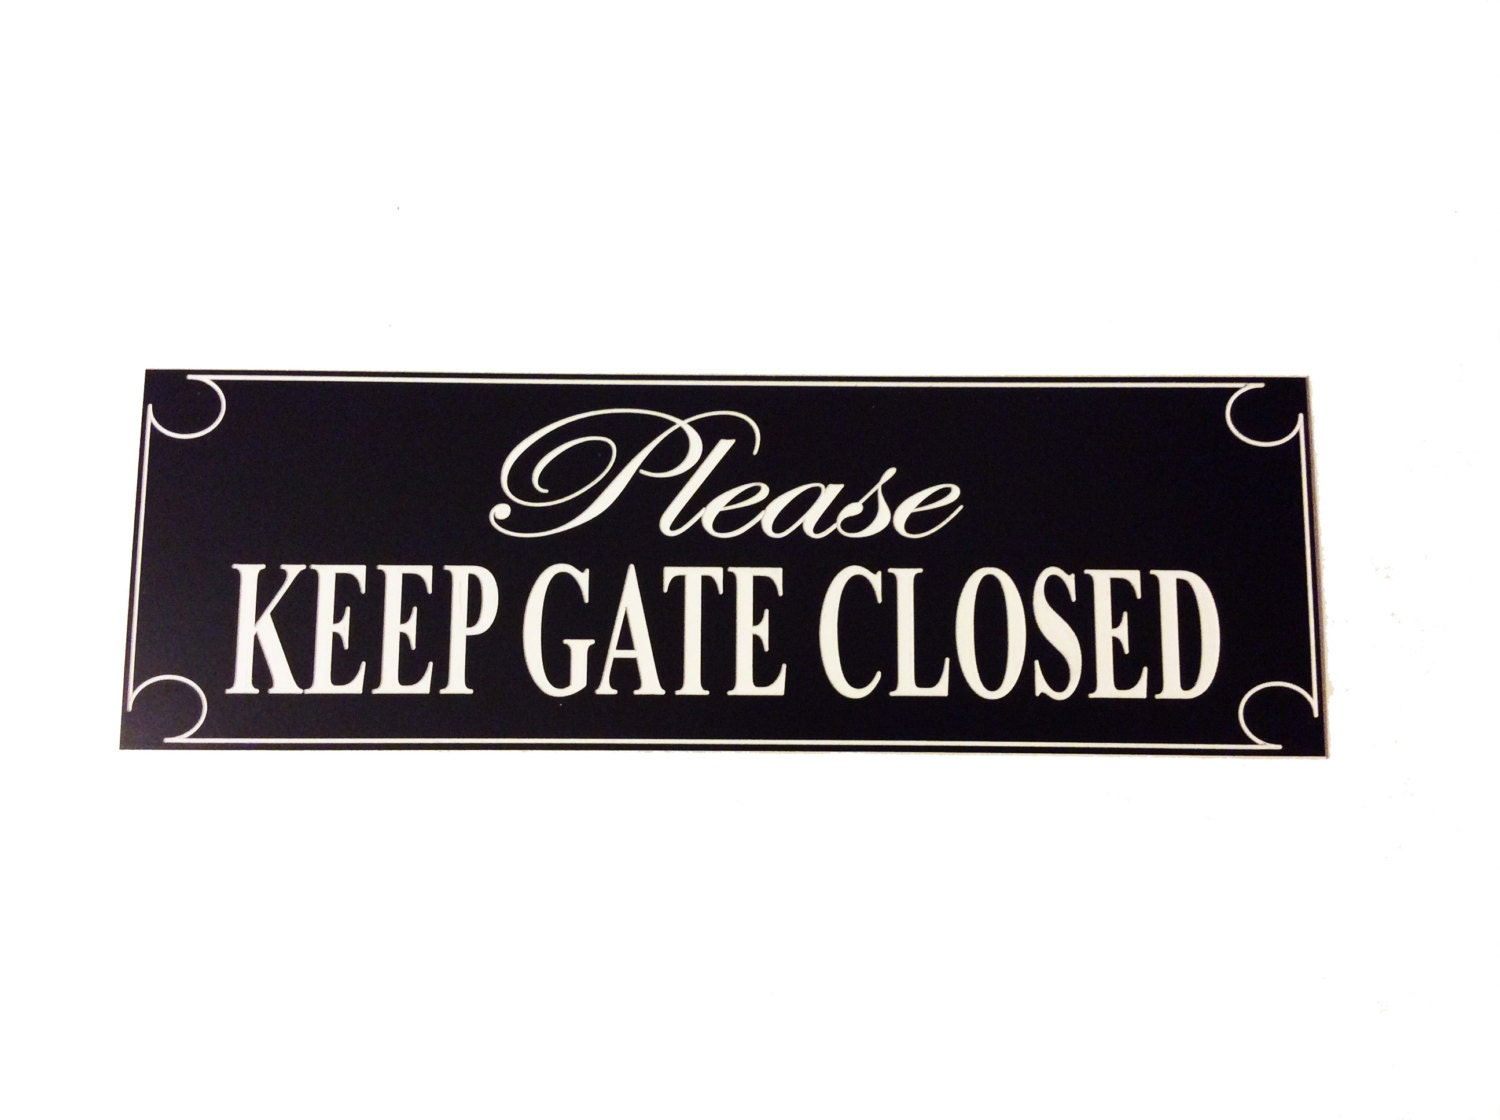 Please keep gate closed fence sign